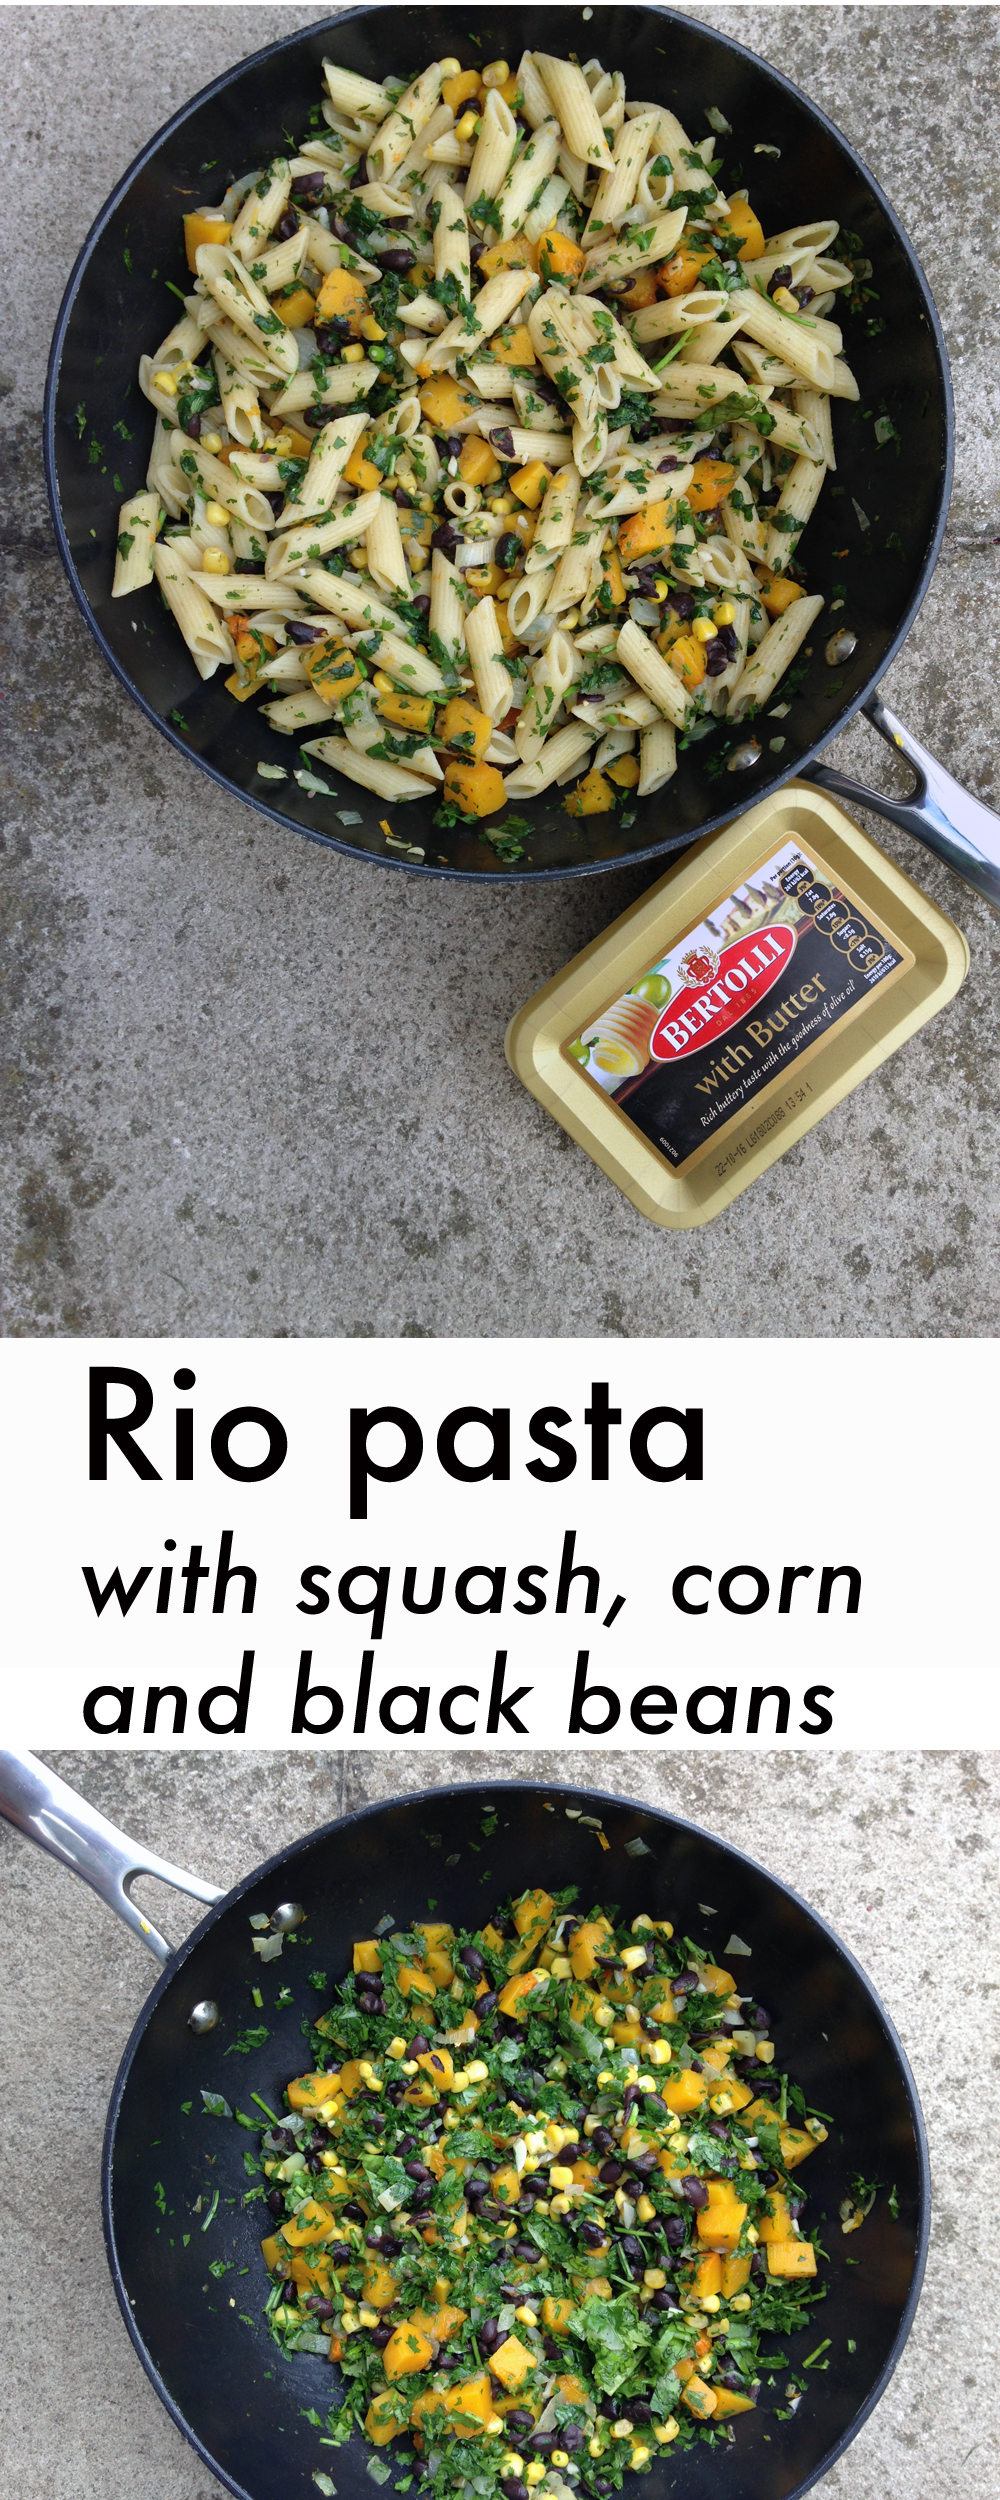 Rio pasta recipe with butternut squash, sweet corn and black beans. A delicious and simple vegetarian pasta dish to celebrate the Olympics